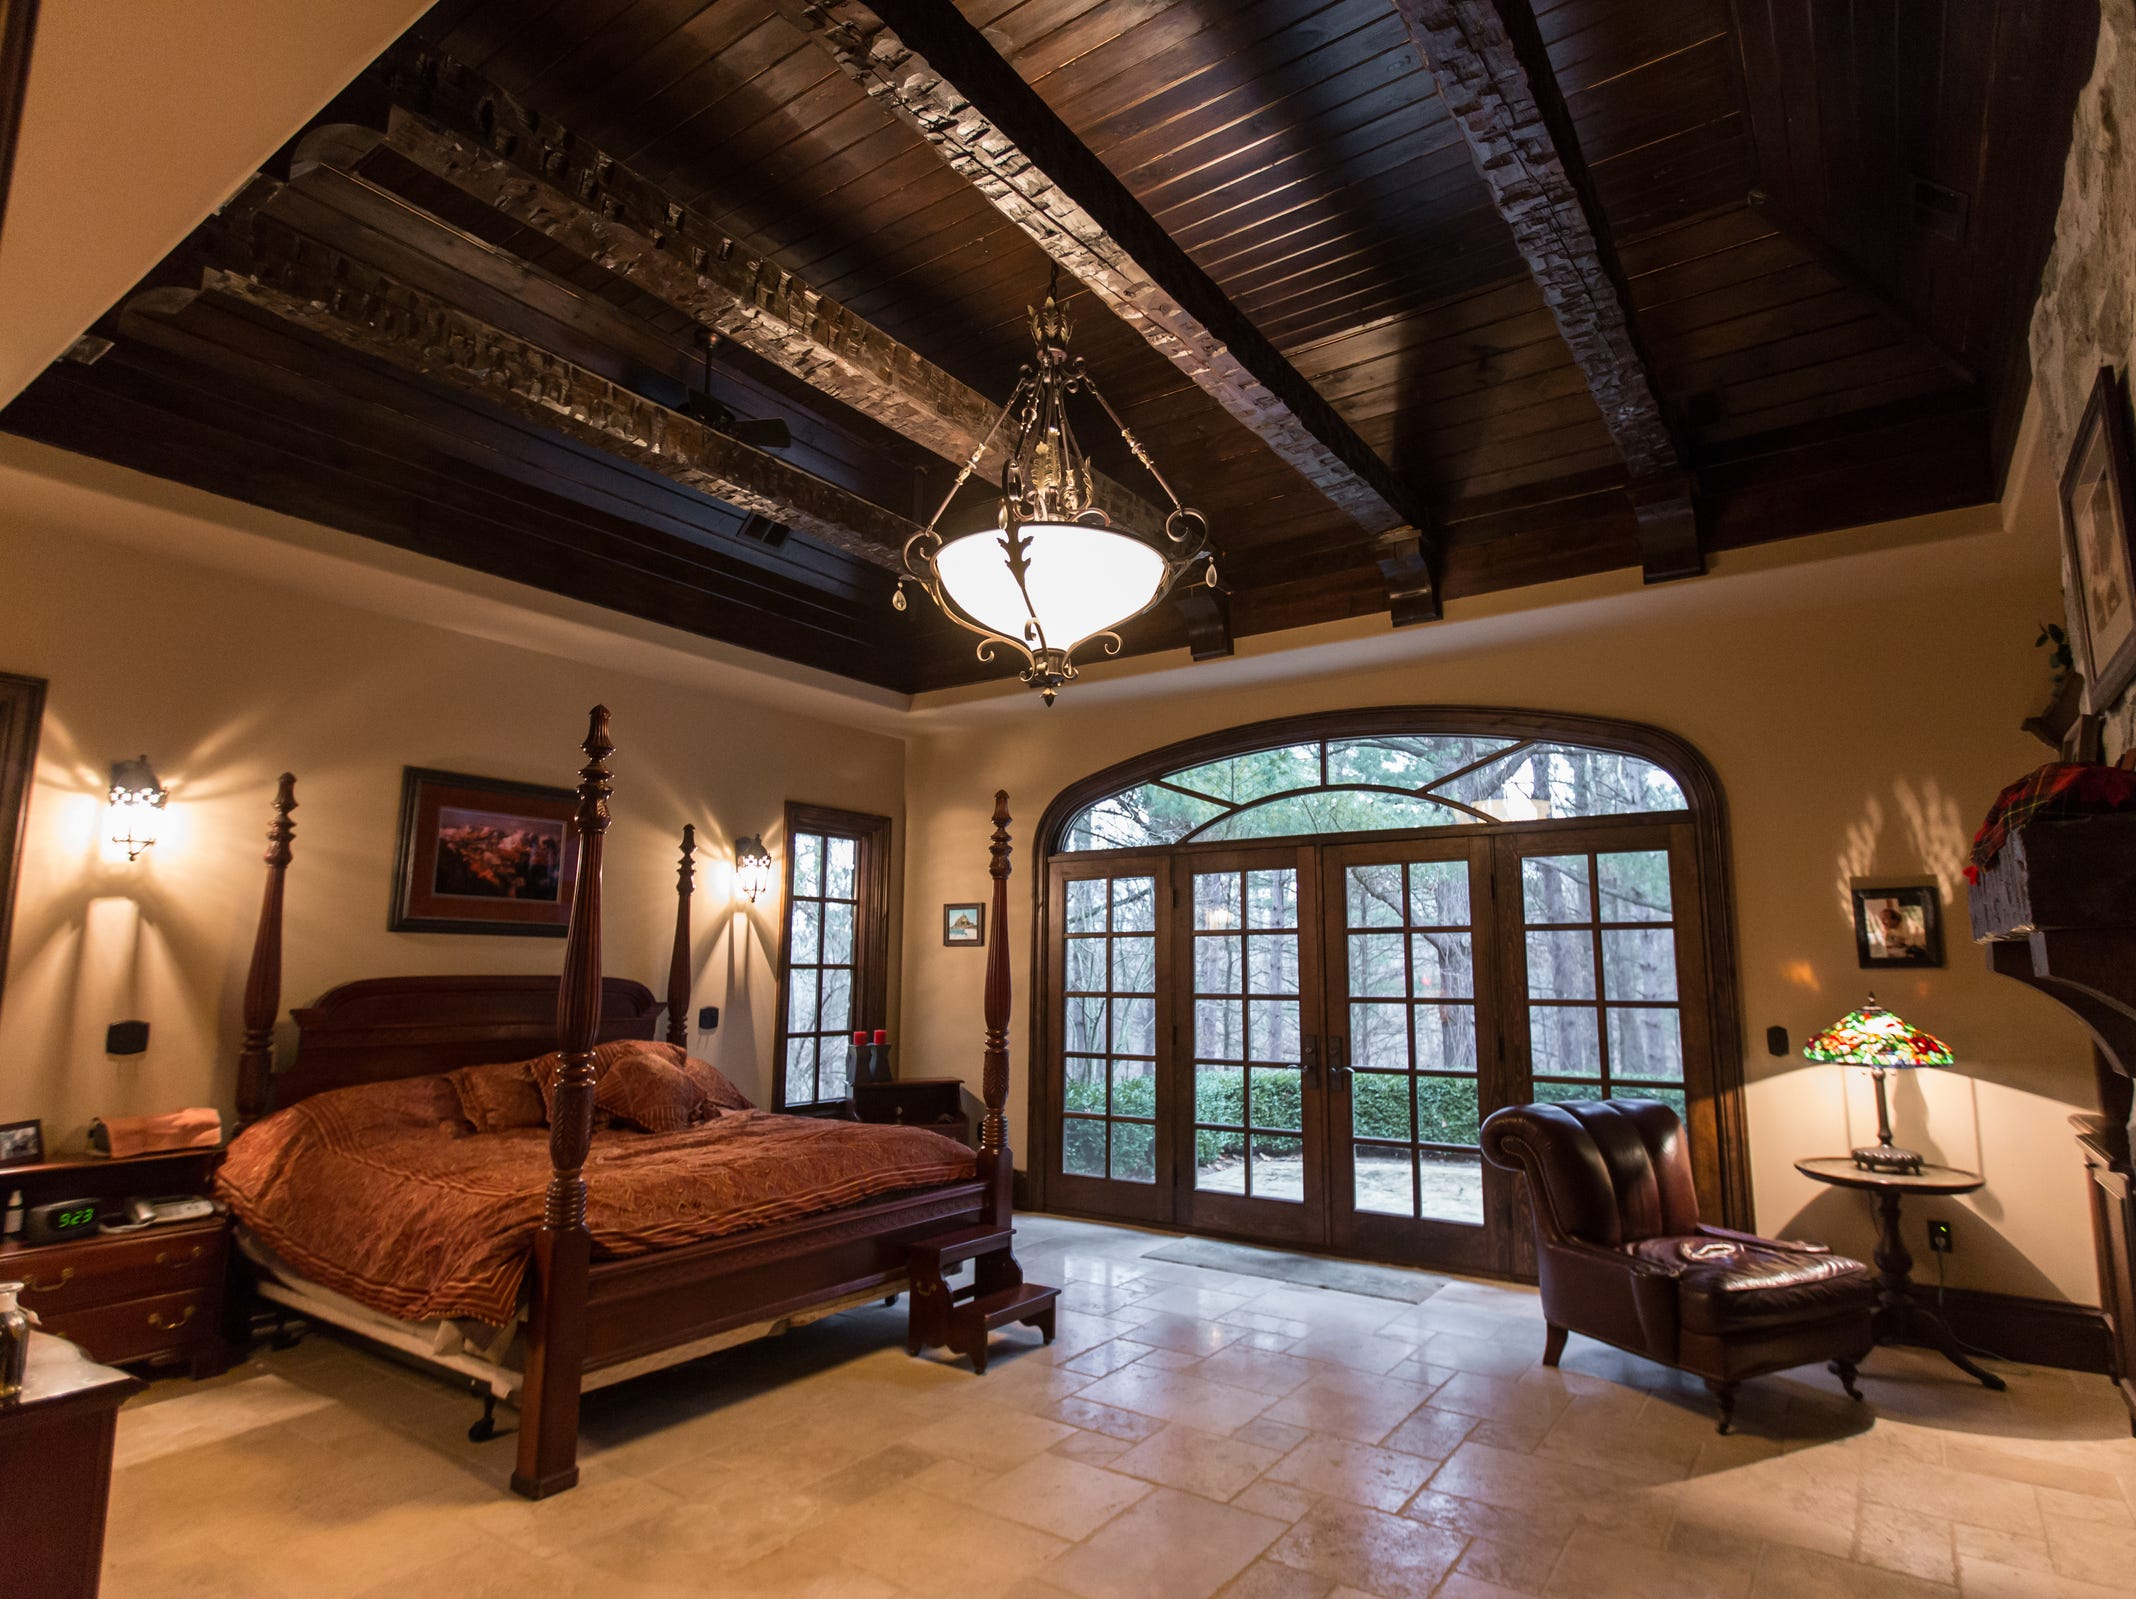 The distinctive ceiling in the owners' suite has a raised section of alder around rough-hewn Amish beams. The door wall is one of three places that group four French doors under an elliptical transom.